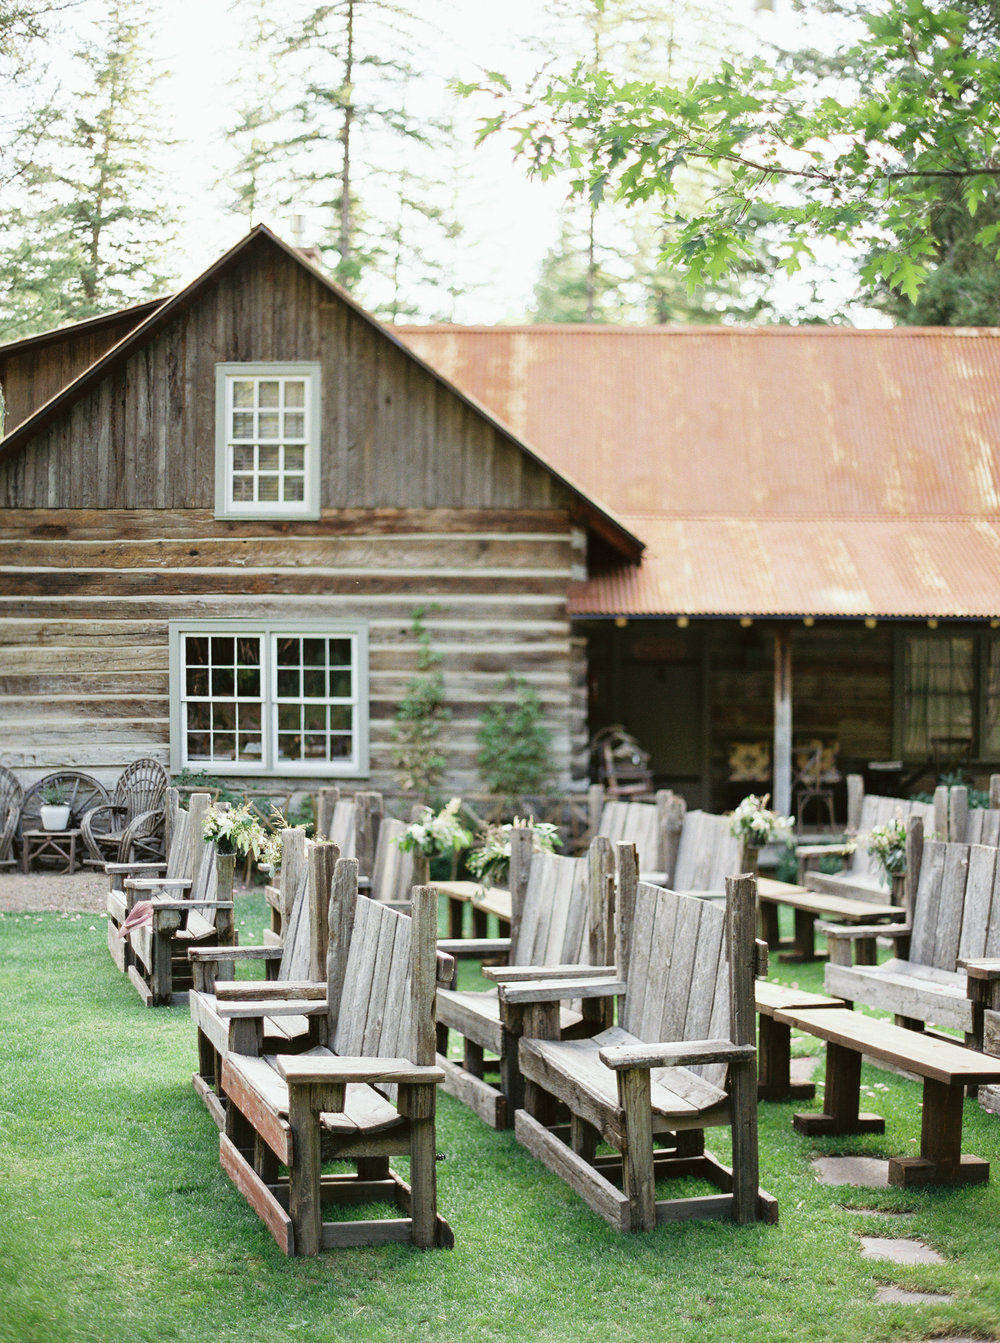 Rustic Montana Wedding Ceremony Pews at the Weatherwood Homestead